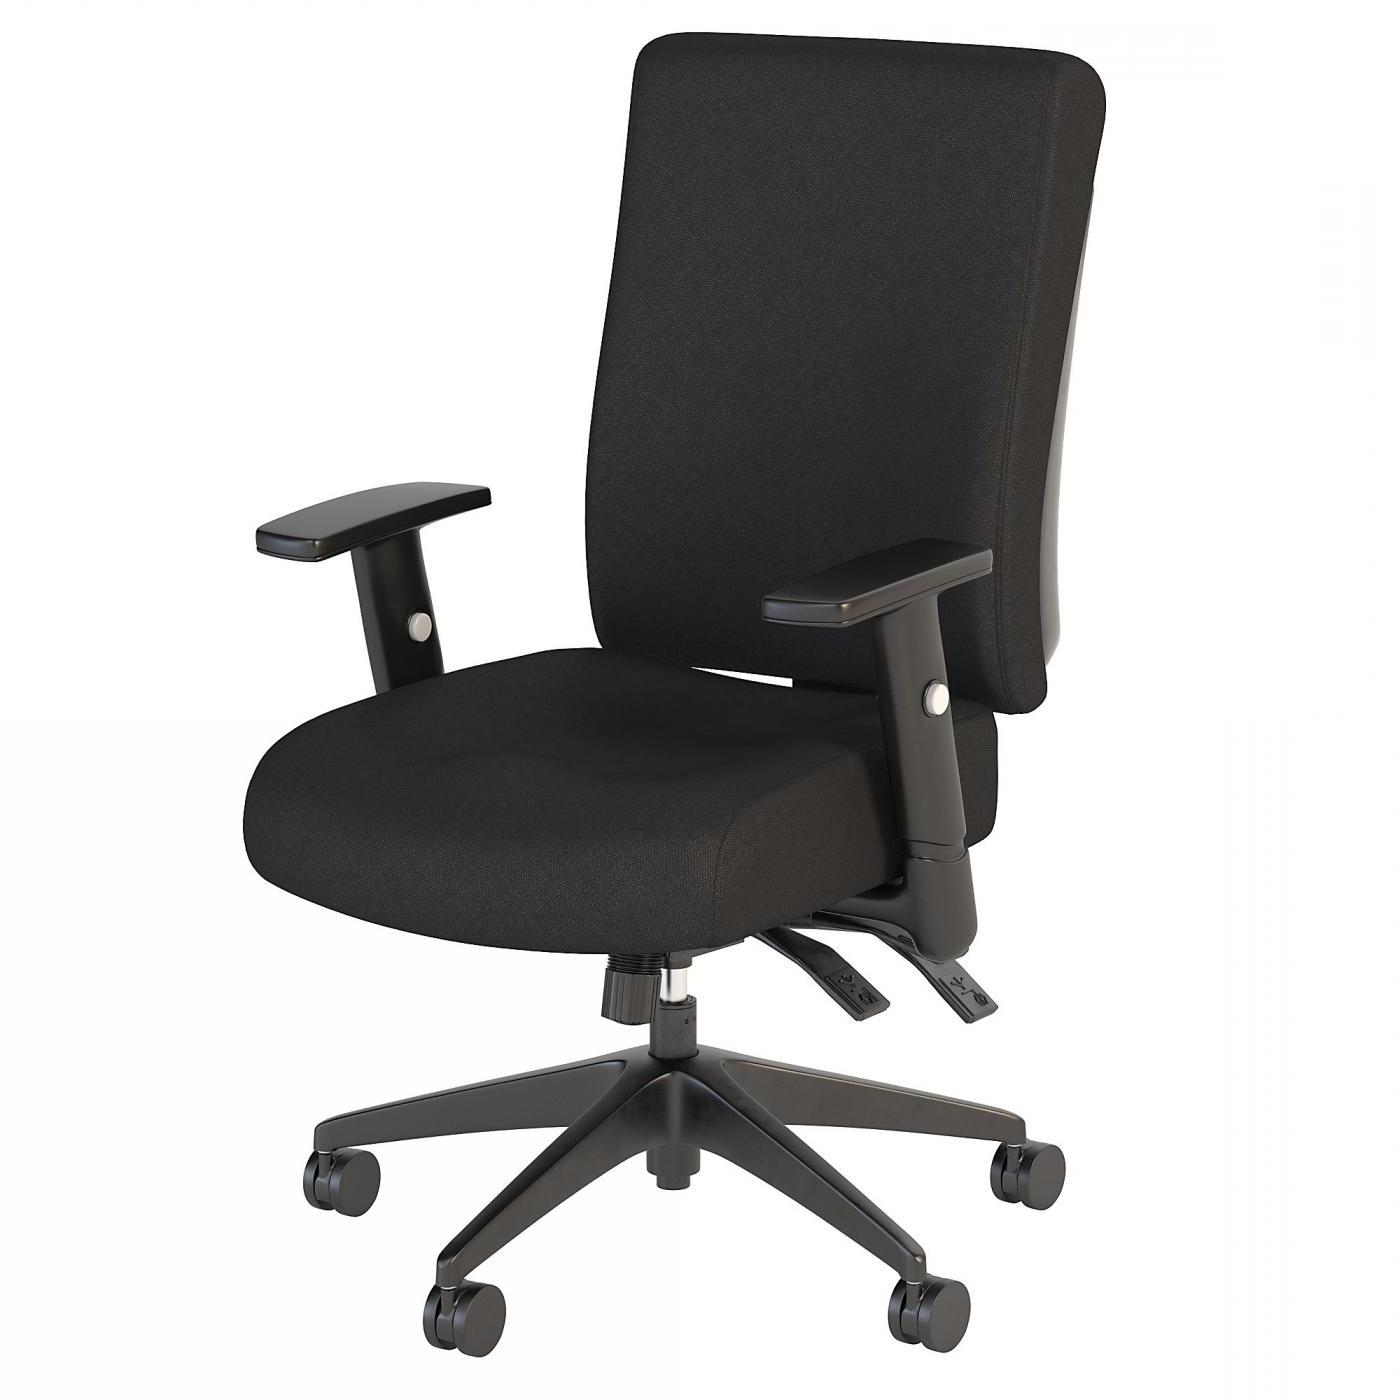 BUSH BUSINESS FURNITURE ACCORD HIGH BACK DELUXE MULTIFUNCTION OFFICE CHAIR. FREE SHIPPING.